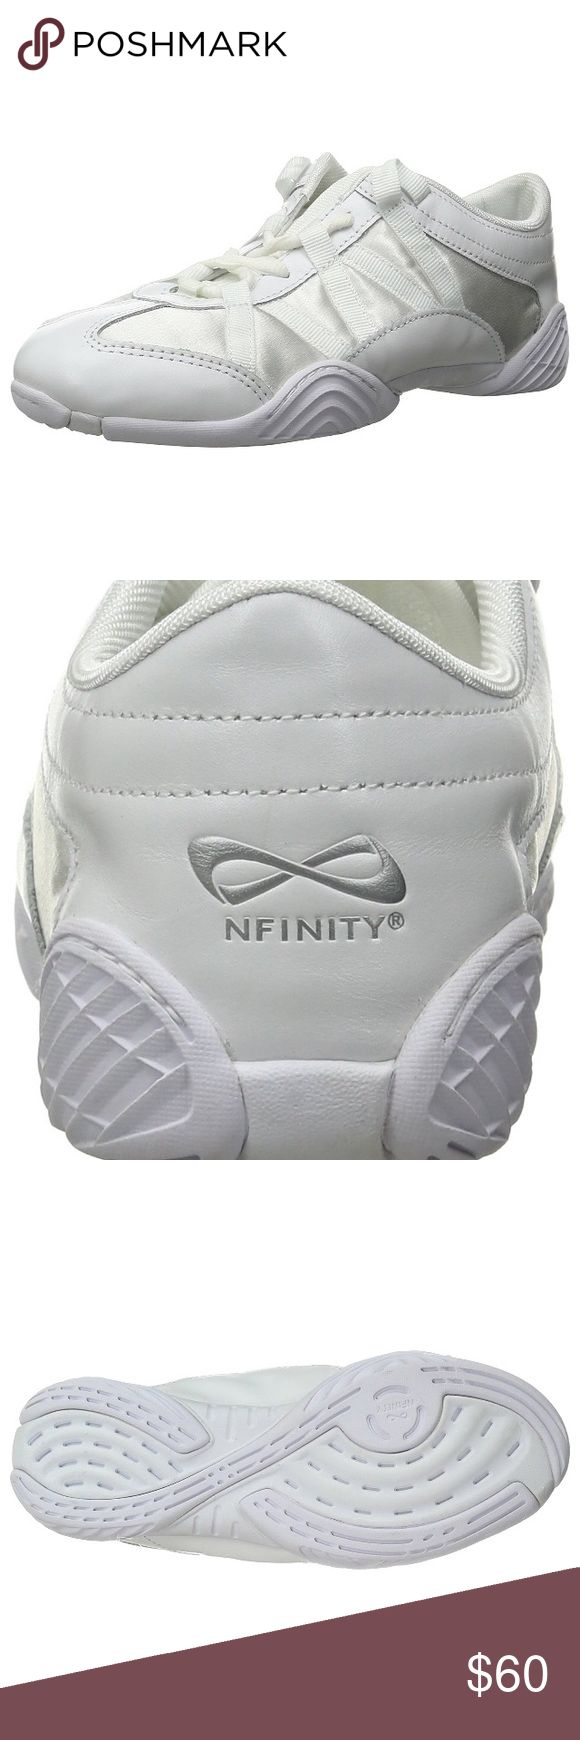 Nfinity cheer shoes. Authentic. NWT. NWT! Never been worn still in case. White. Perfect cheer/tumbling shoes. nfinity cheer shoes Shoes Athletic Shoes